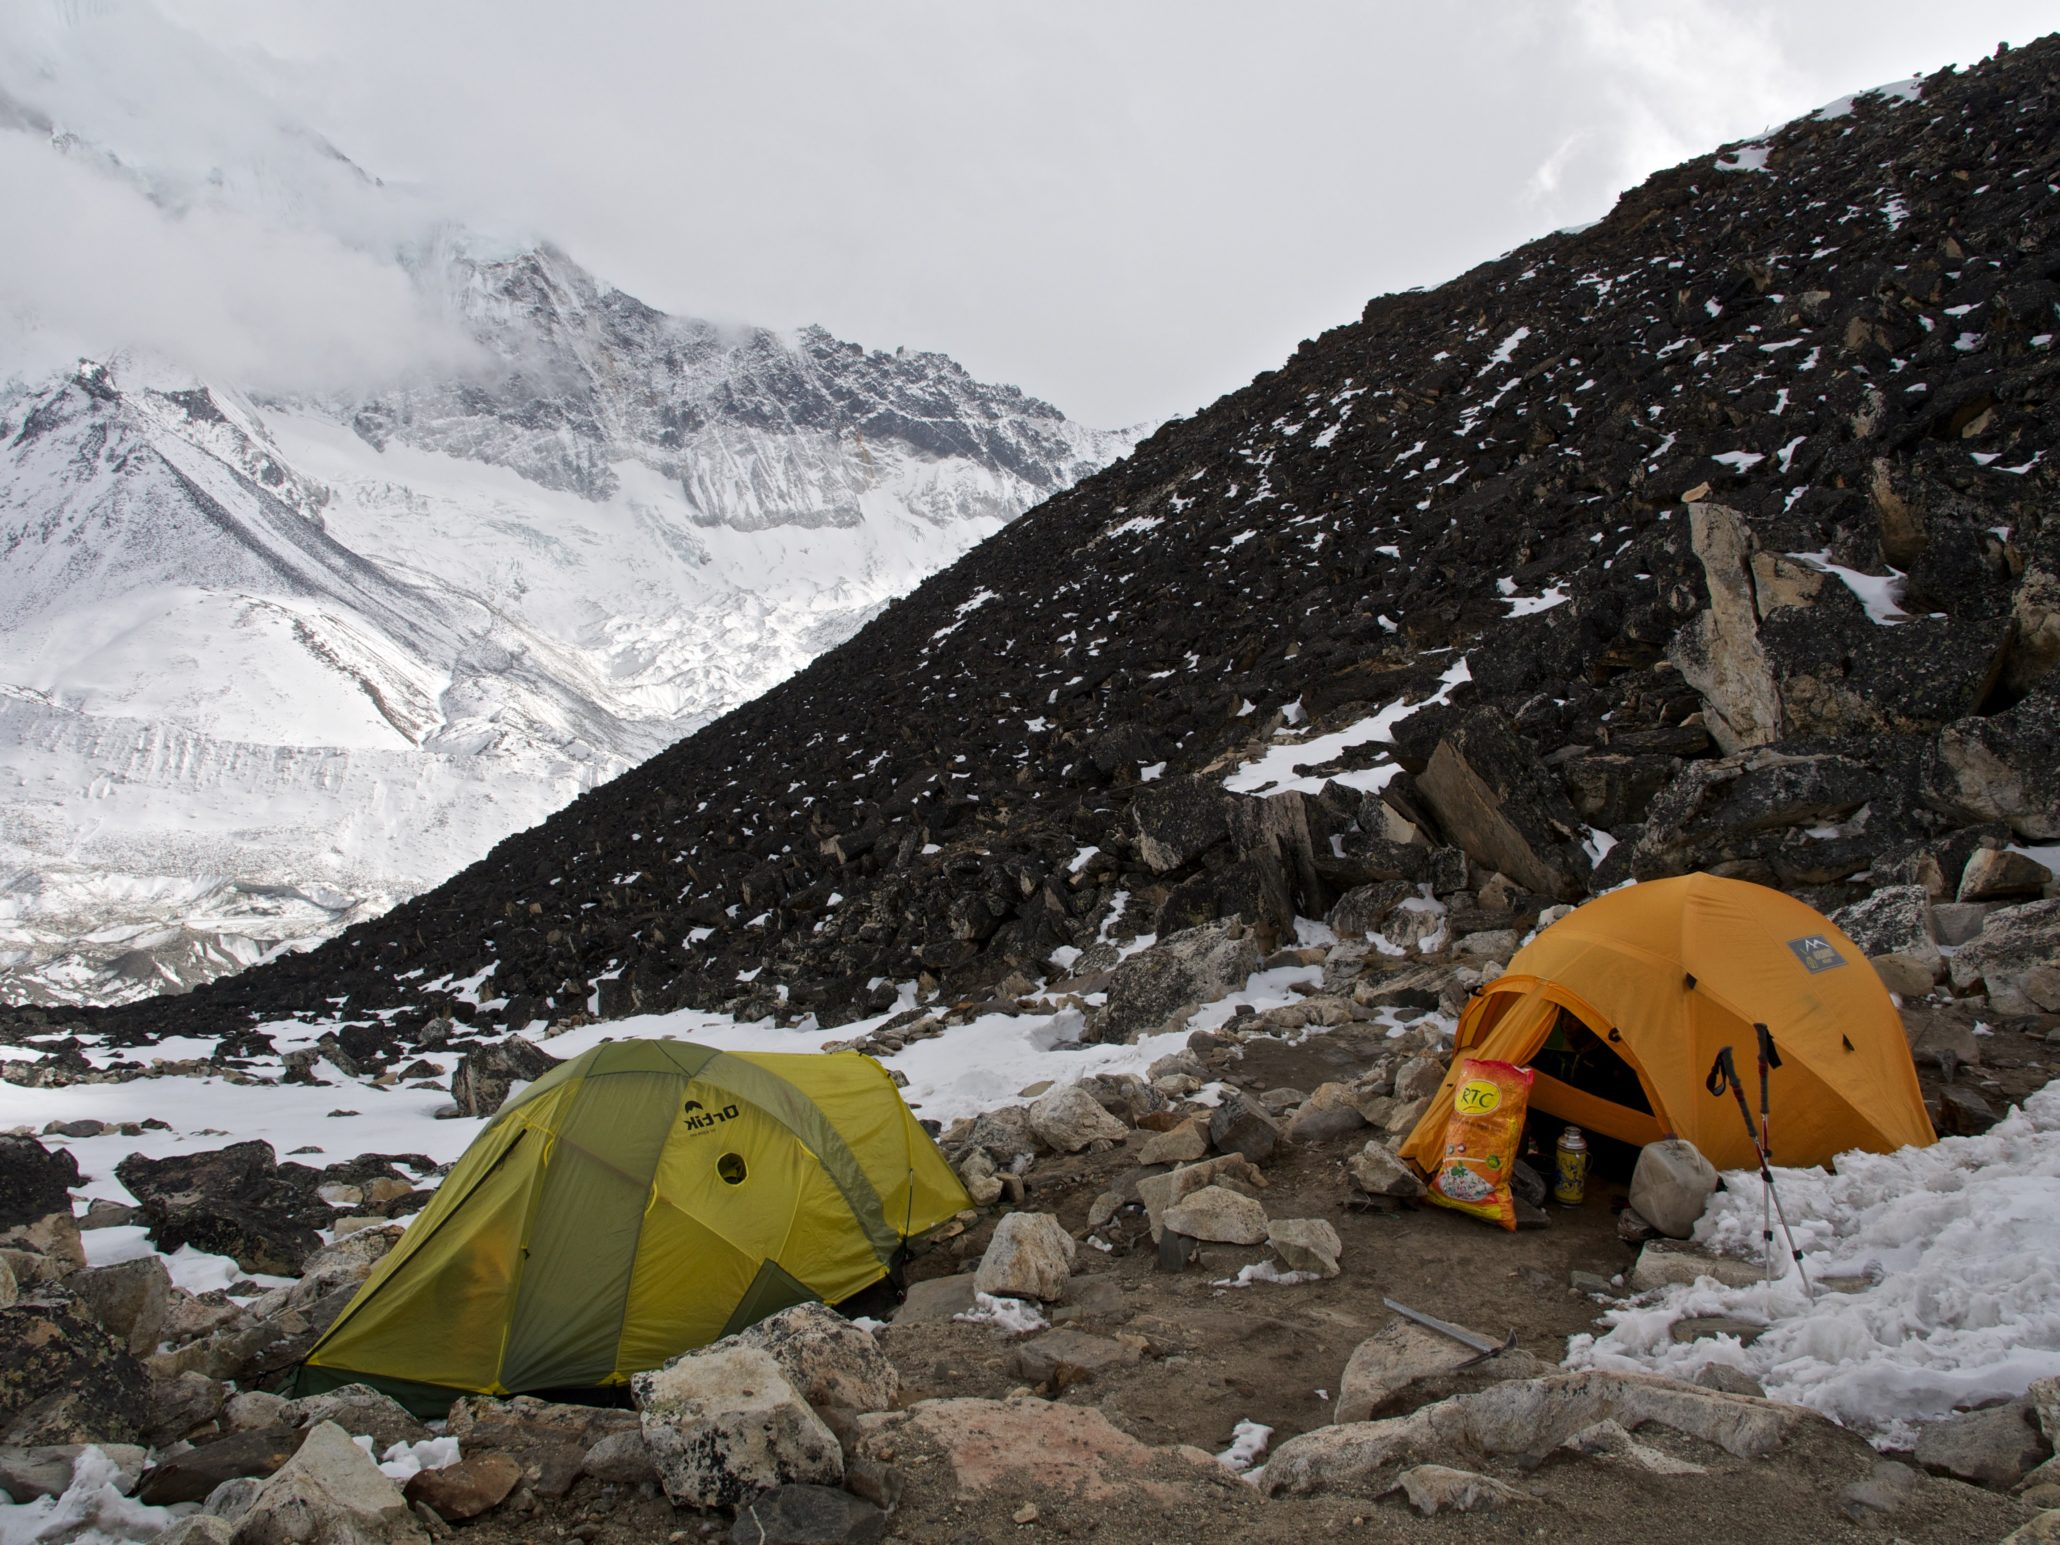 2 tents settled at the foot of rocky mountains